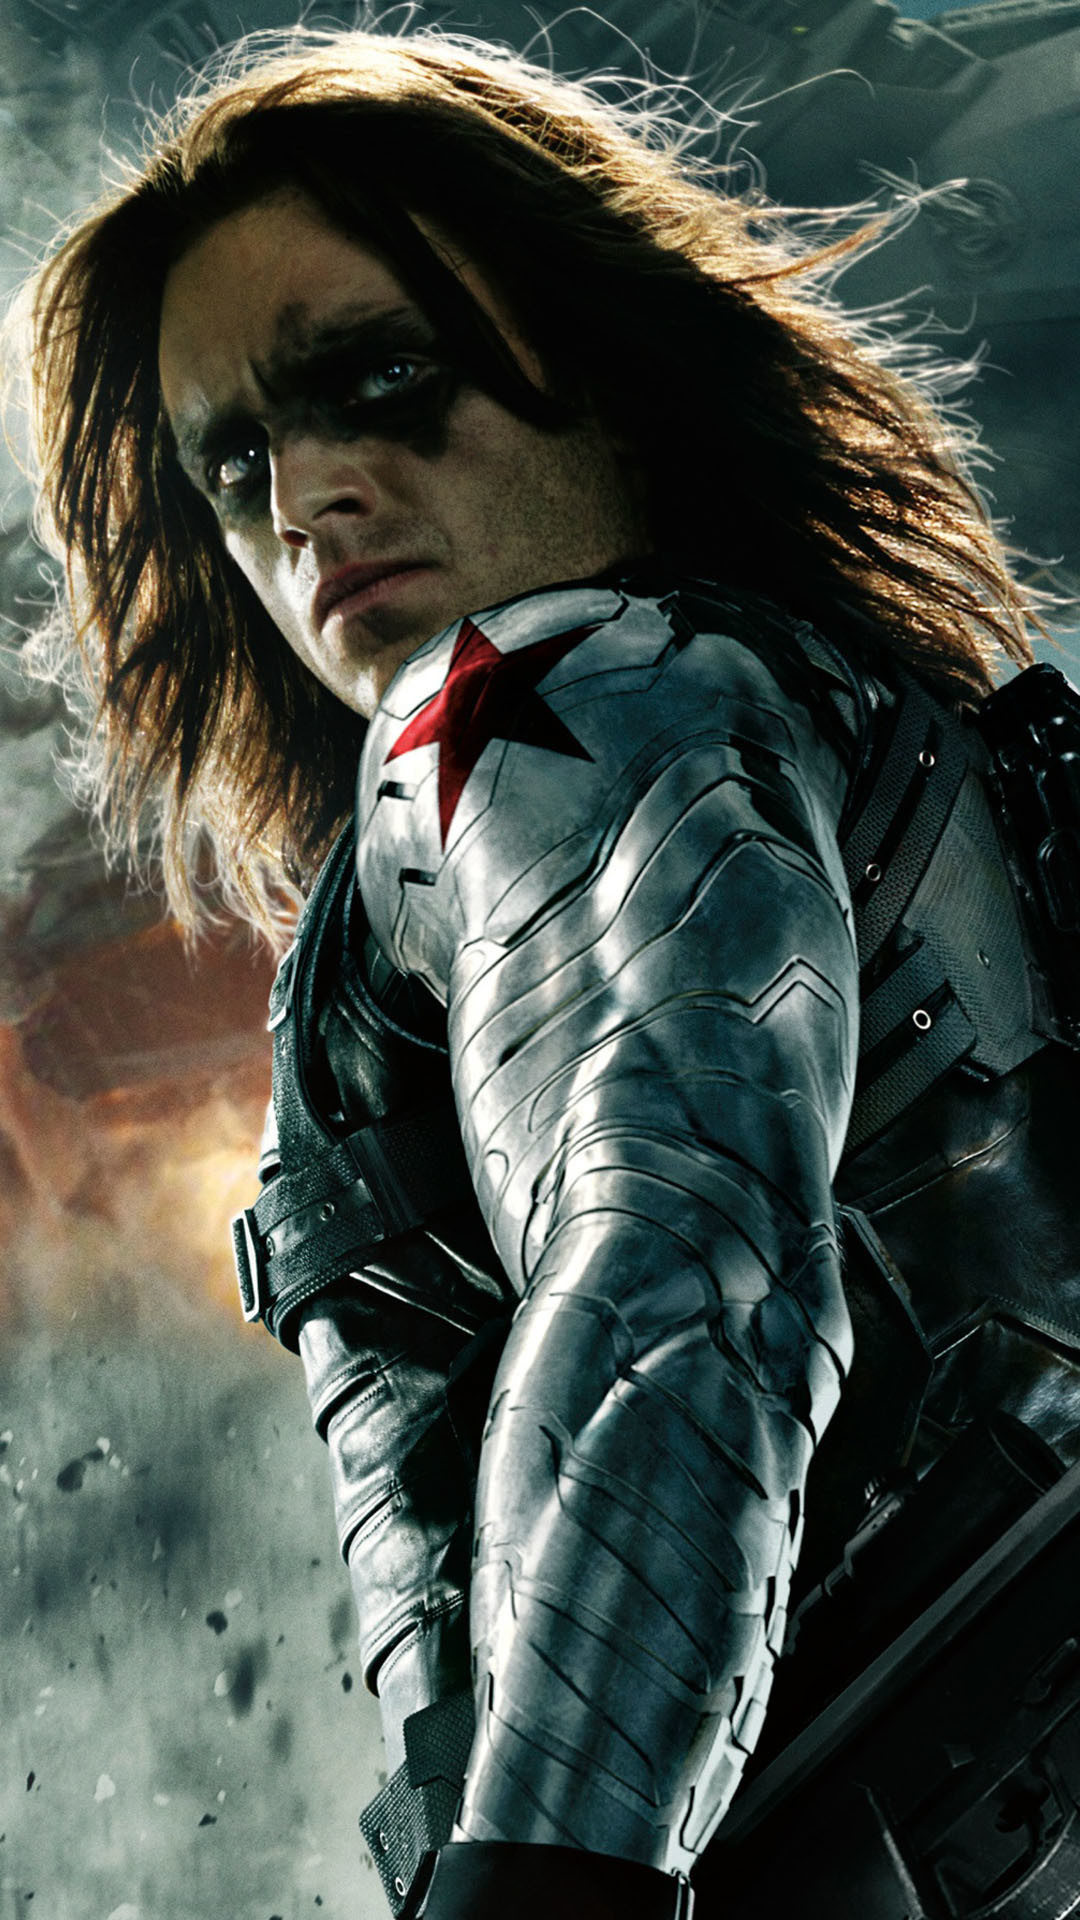 1080x1920 The Winter Soldier Android Wallpaper ...